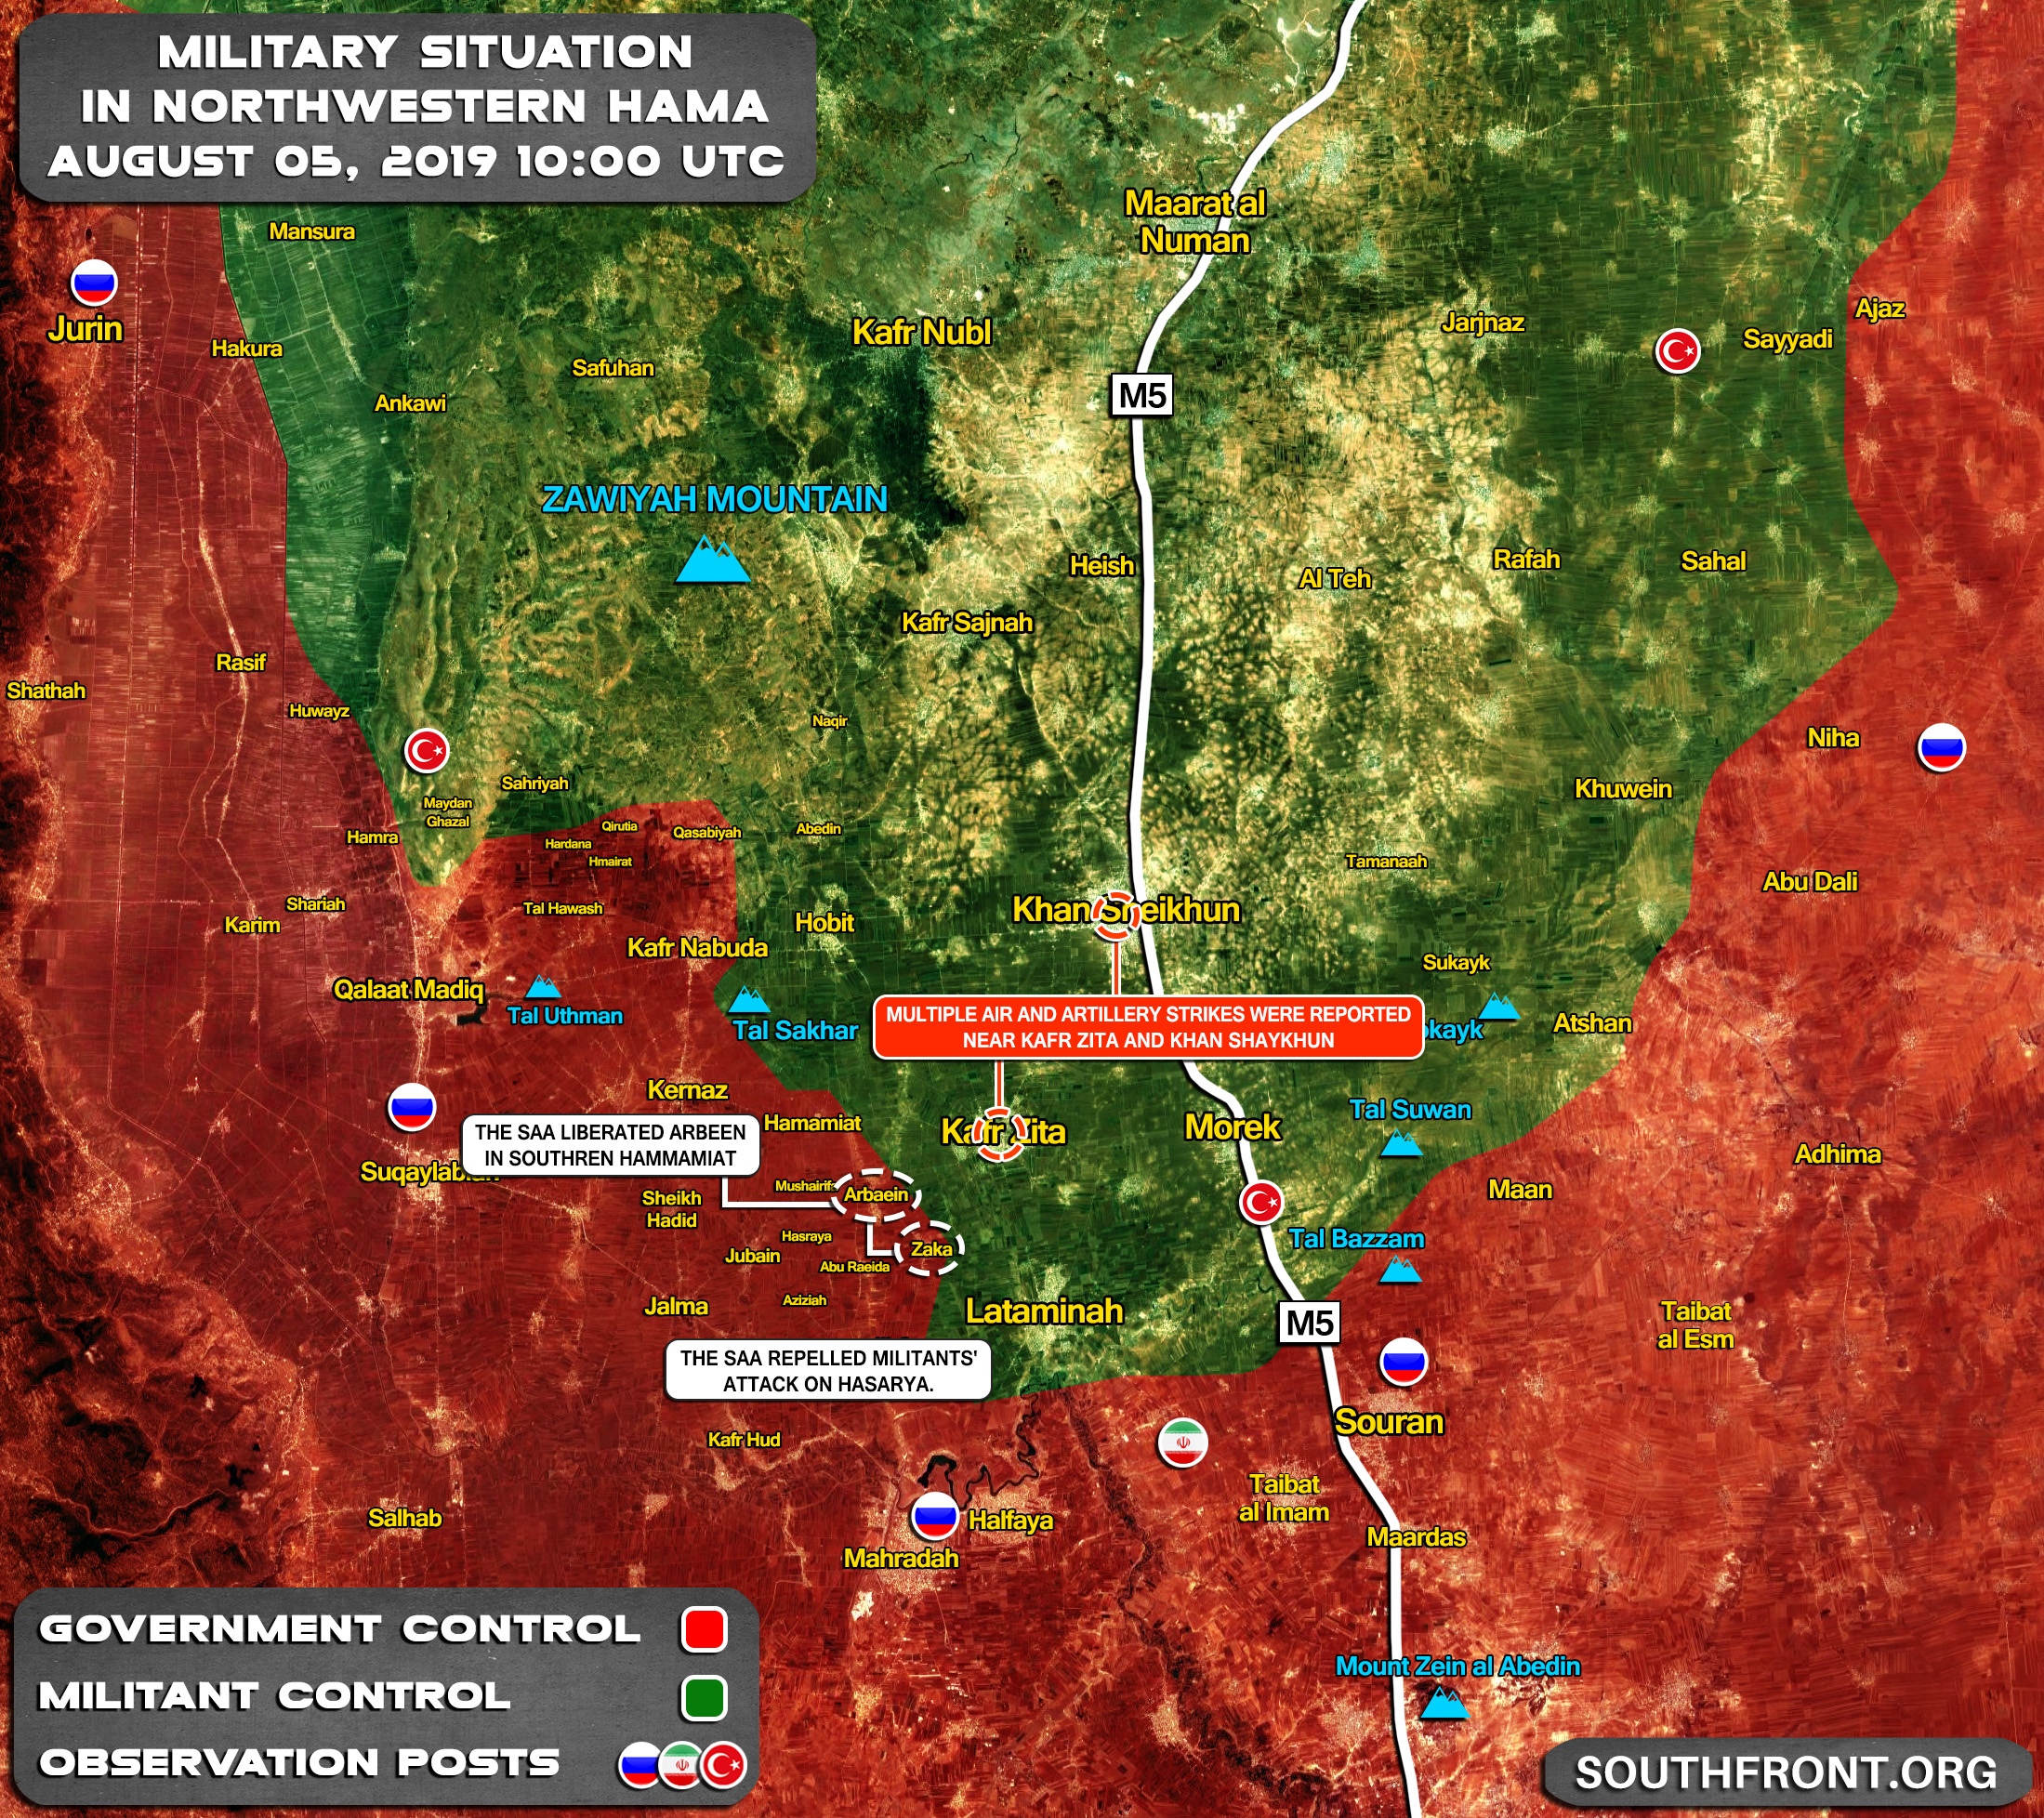 Syrian Army Cuts Off Key Militant Supply Line In Northern Hama